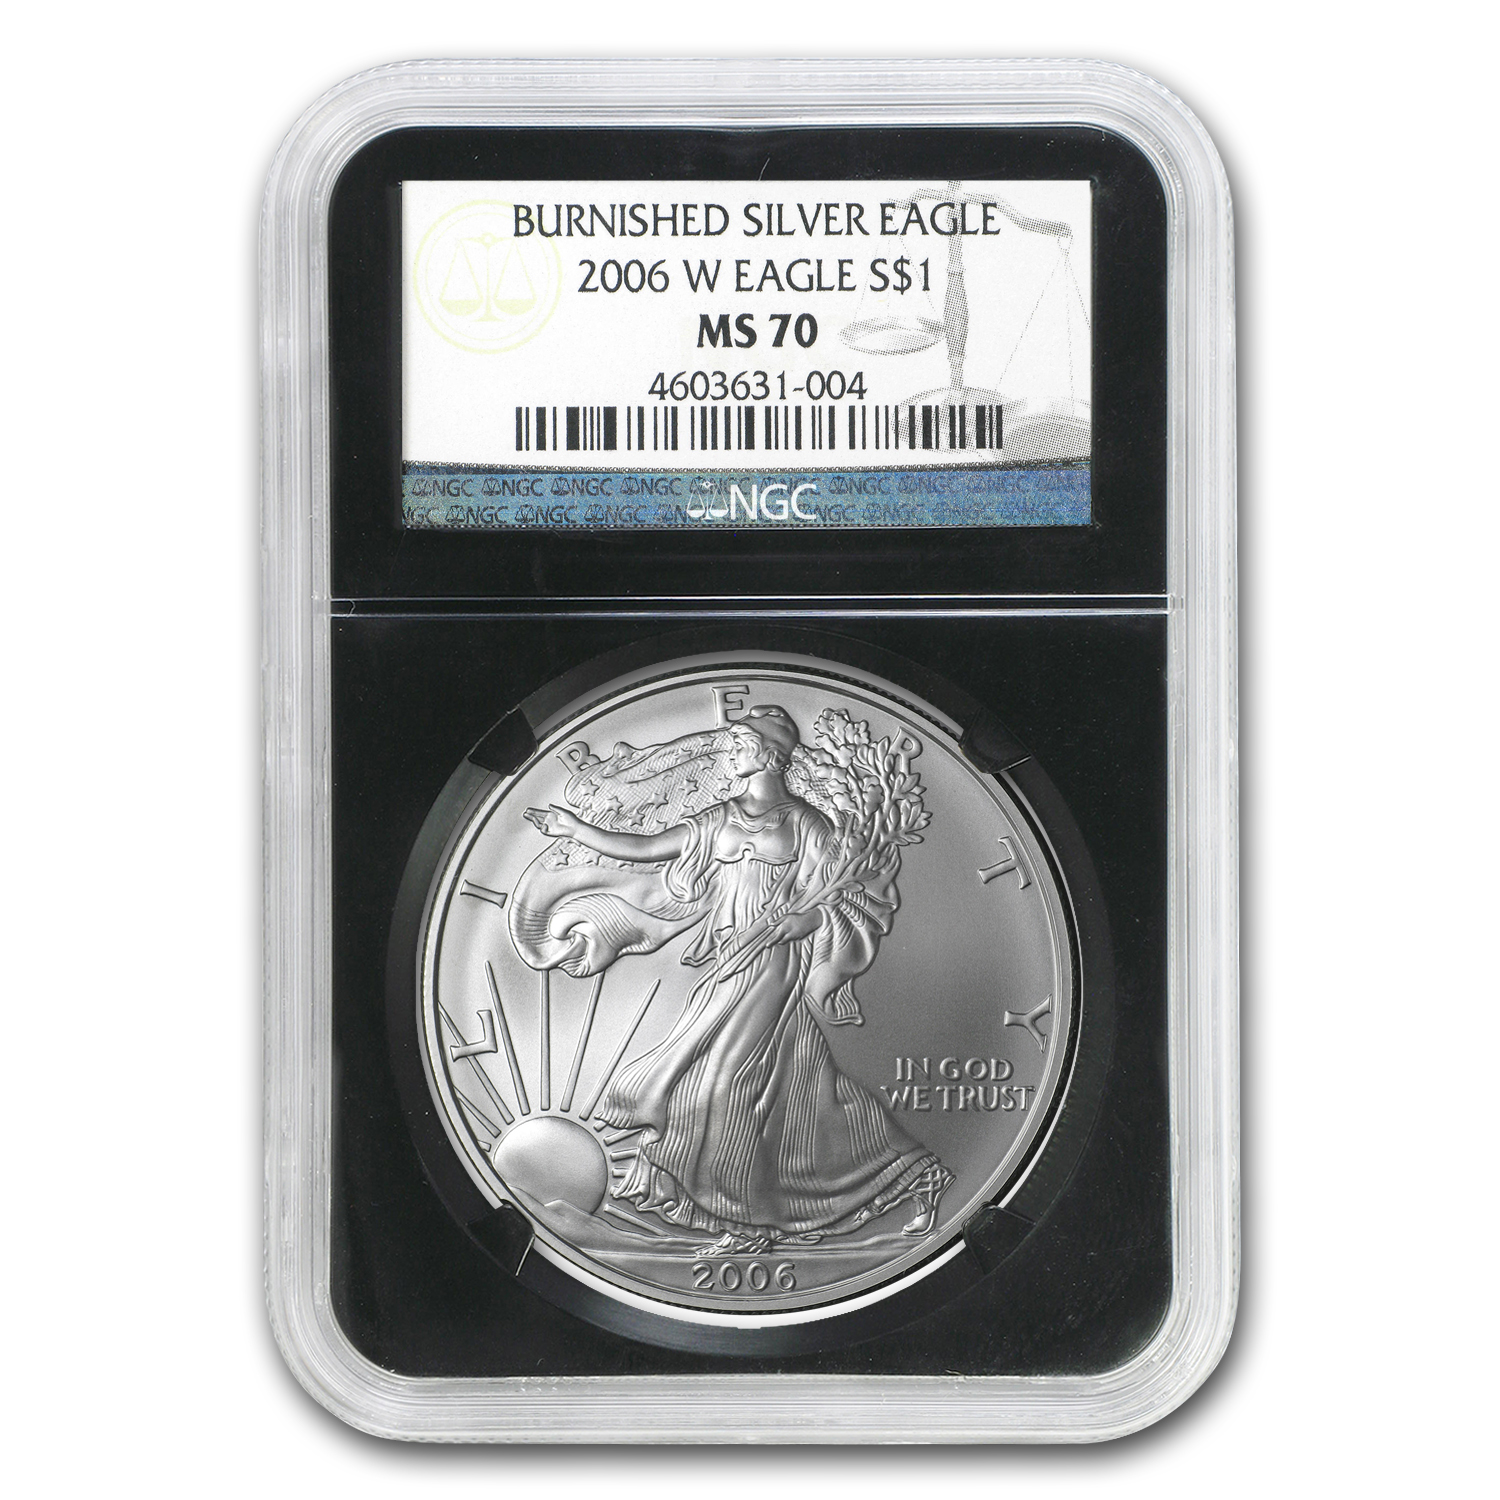 2006-W Burnished Silver American Eagle MS-70 NGC (Black Insert)